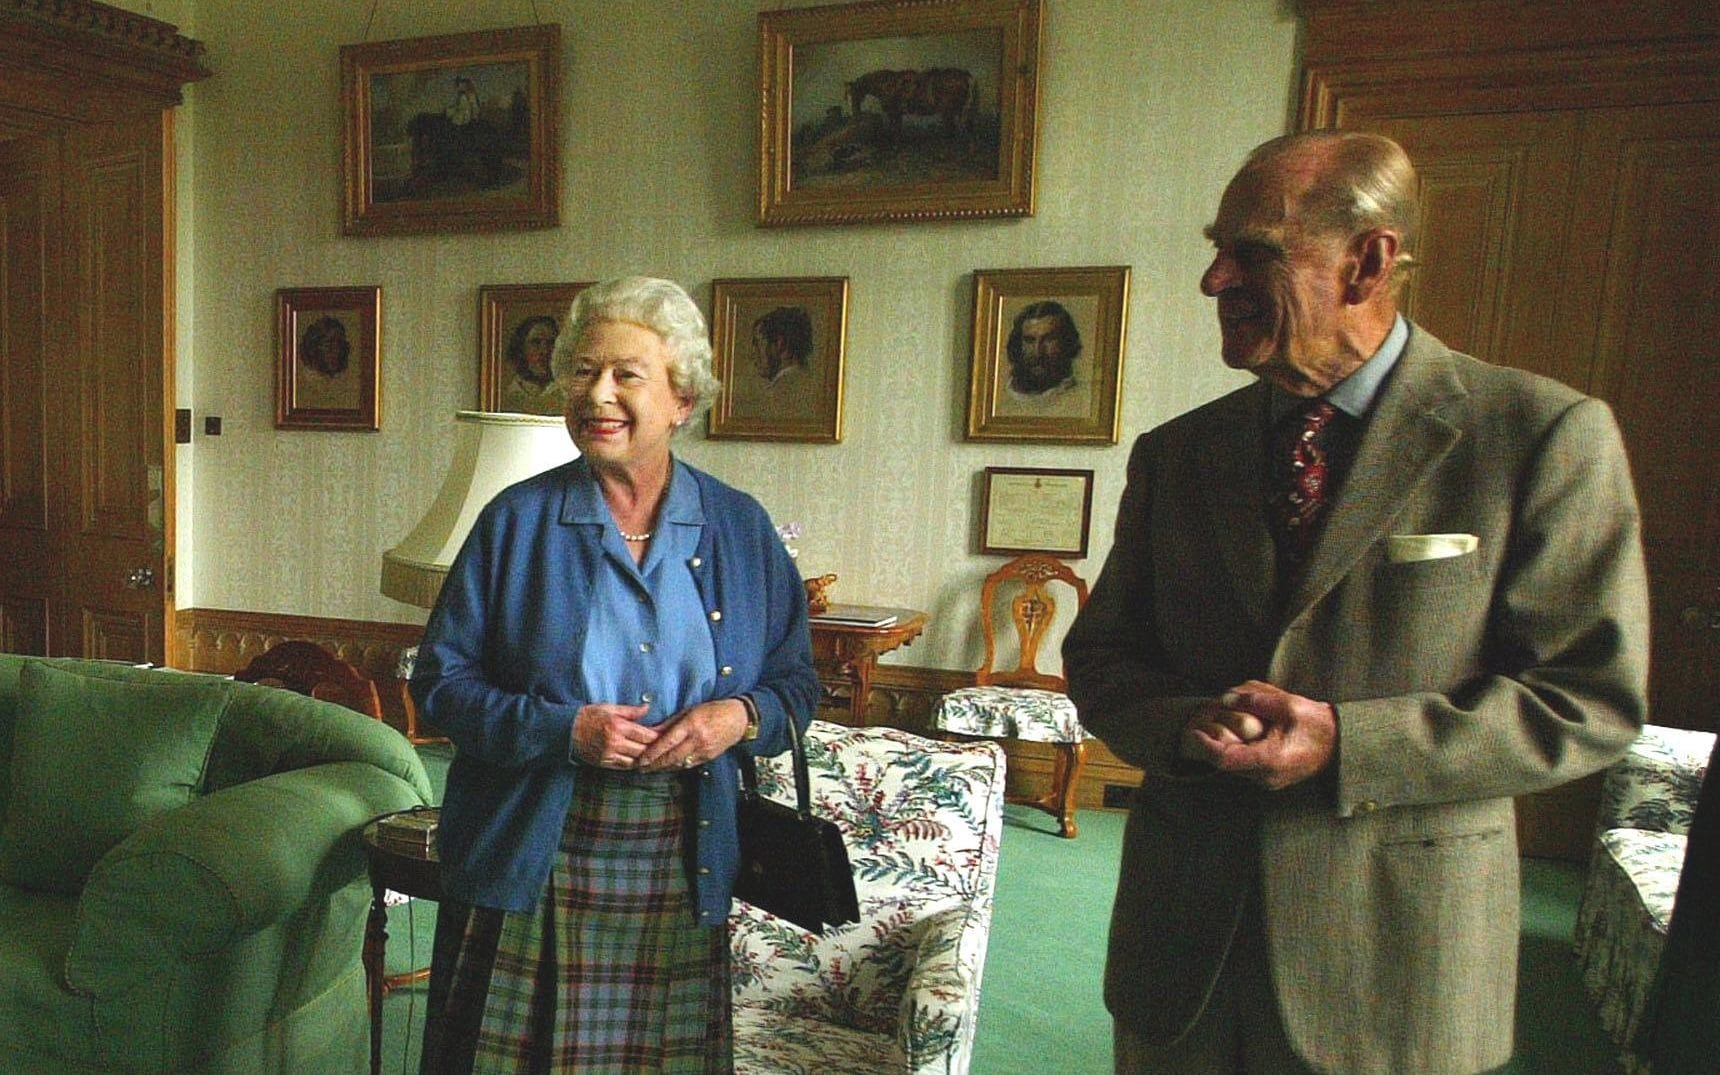 Queen Elizabeth II and the Duke of Edinburgh wait to receive the President of Malta, Dr Edward Fenech-Adami and his wife, Mary at Balmoral Castle